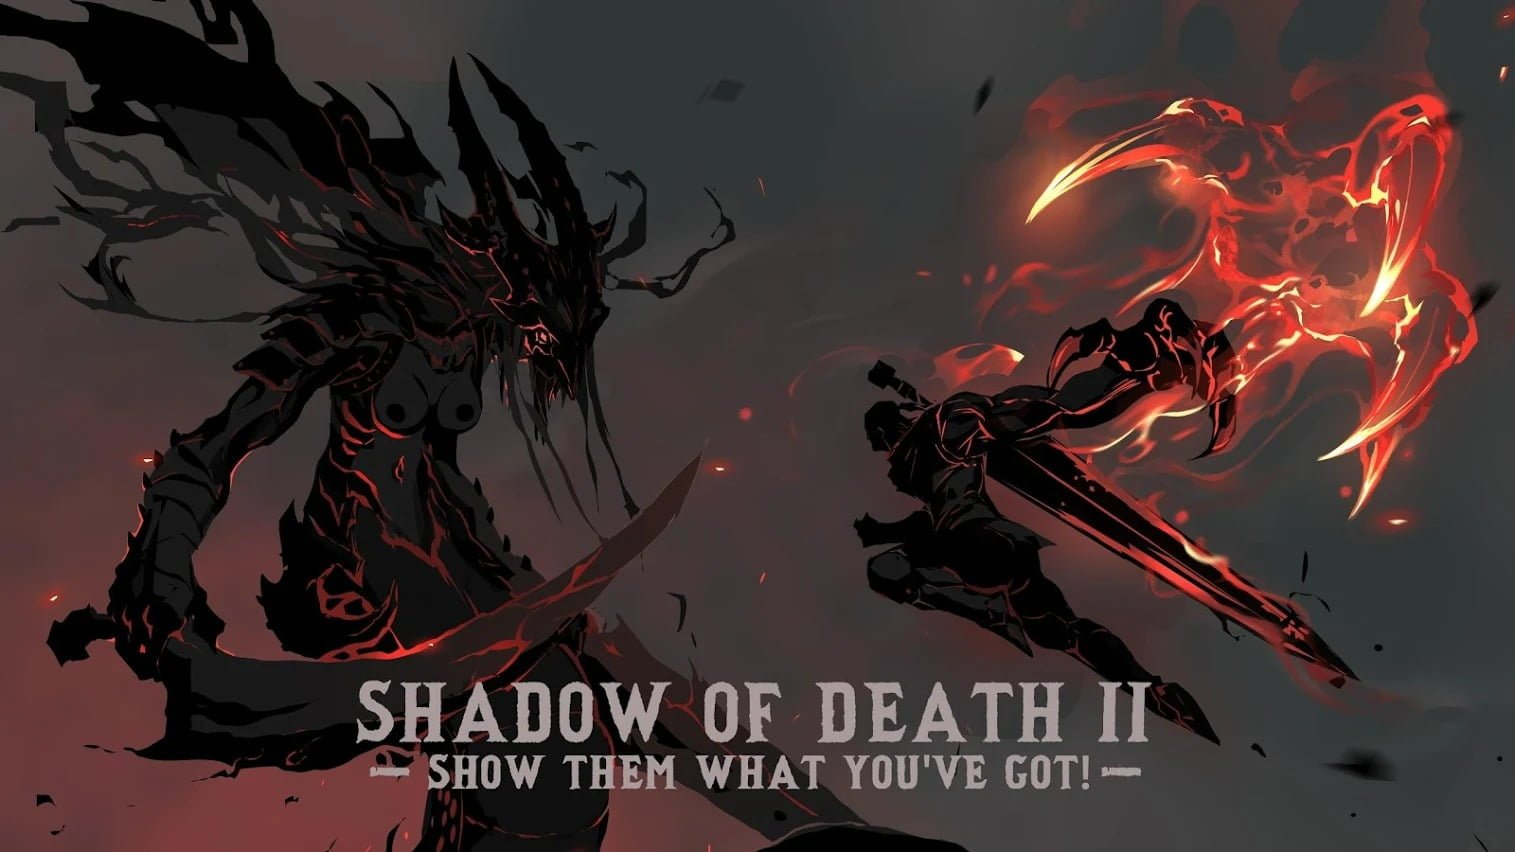 Shadow of Death MOD APK (Hack, Unlock All) Free Download